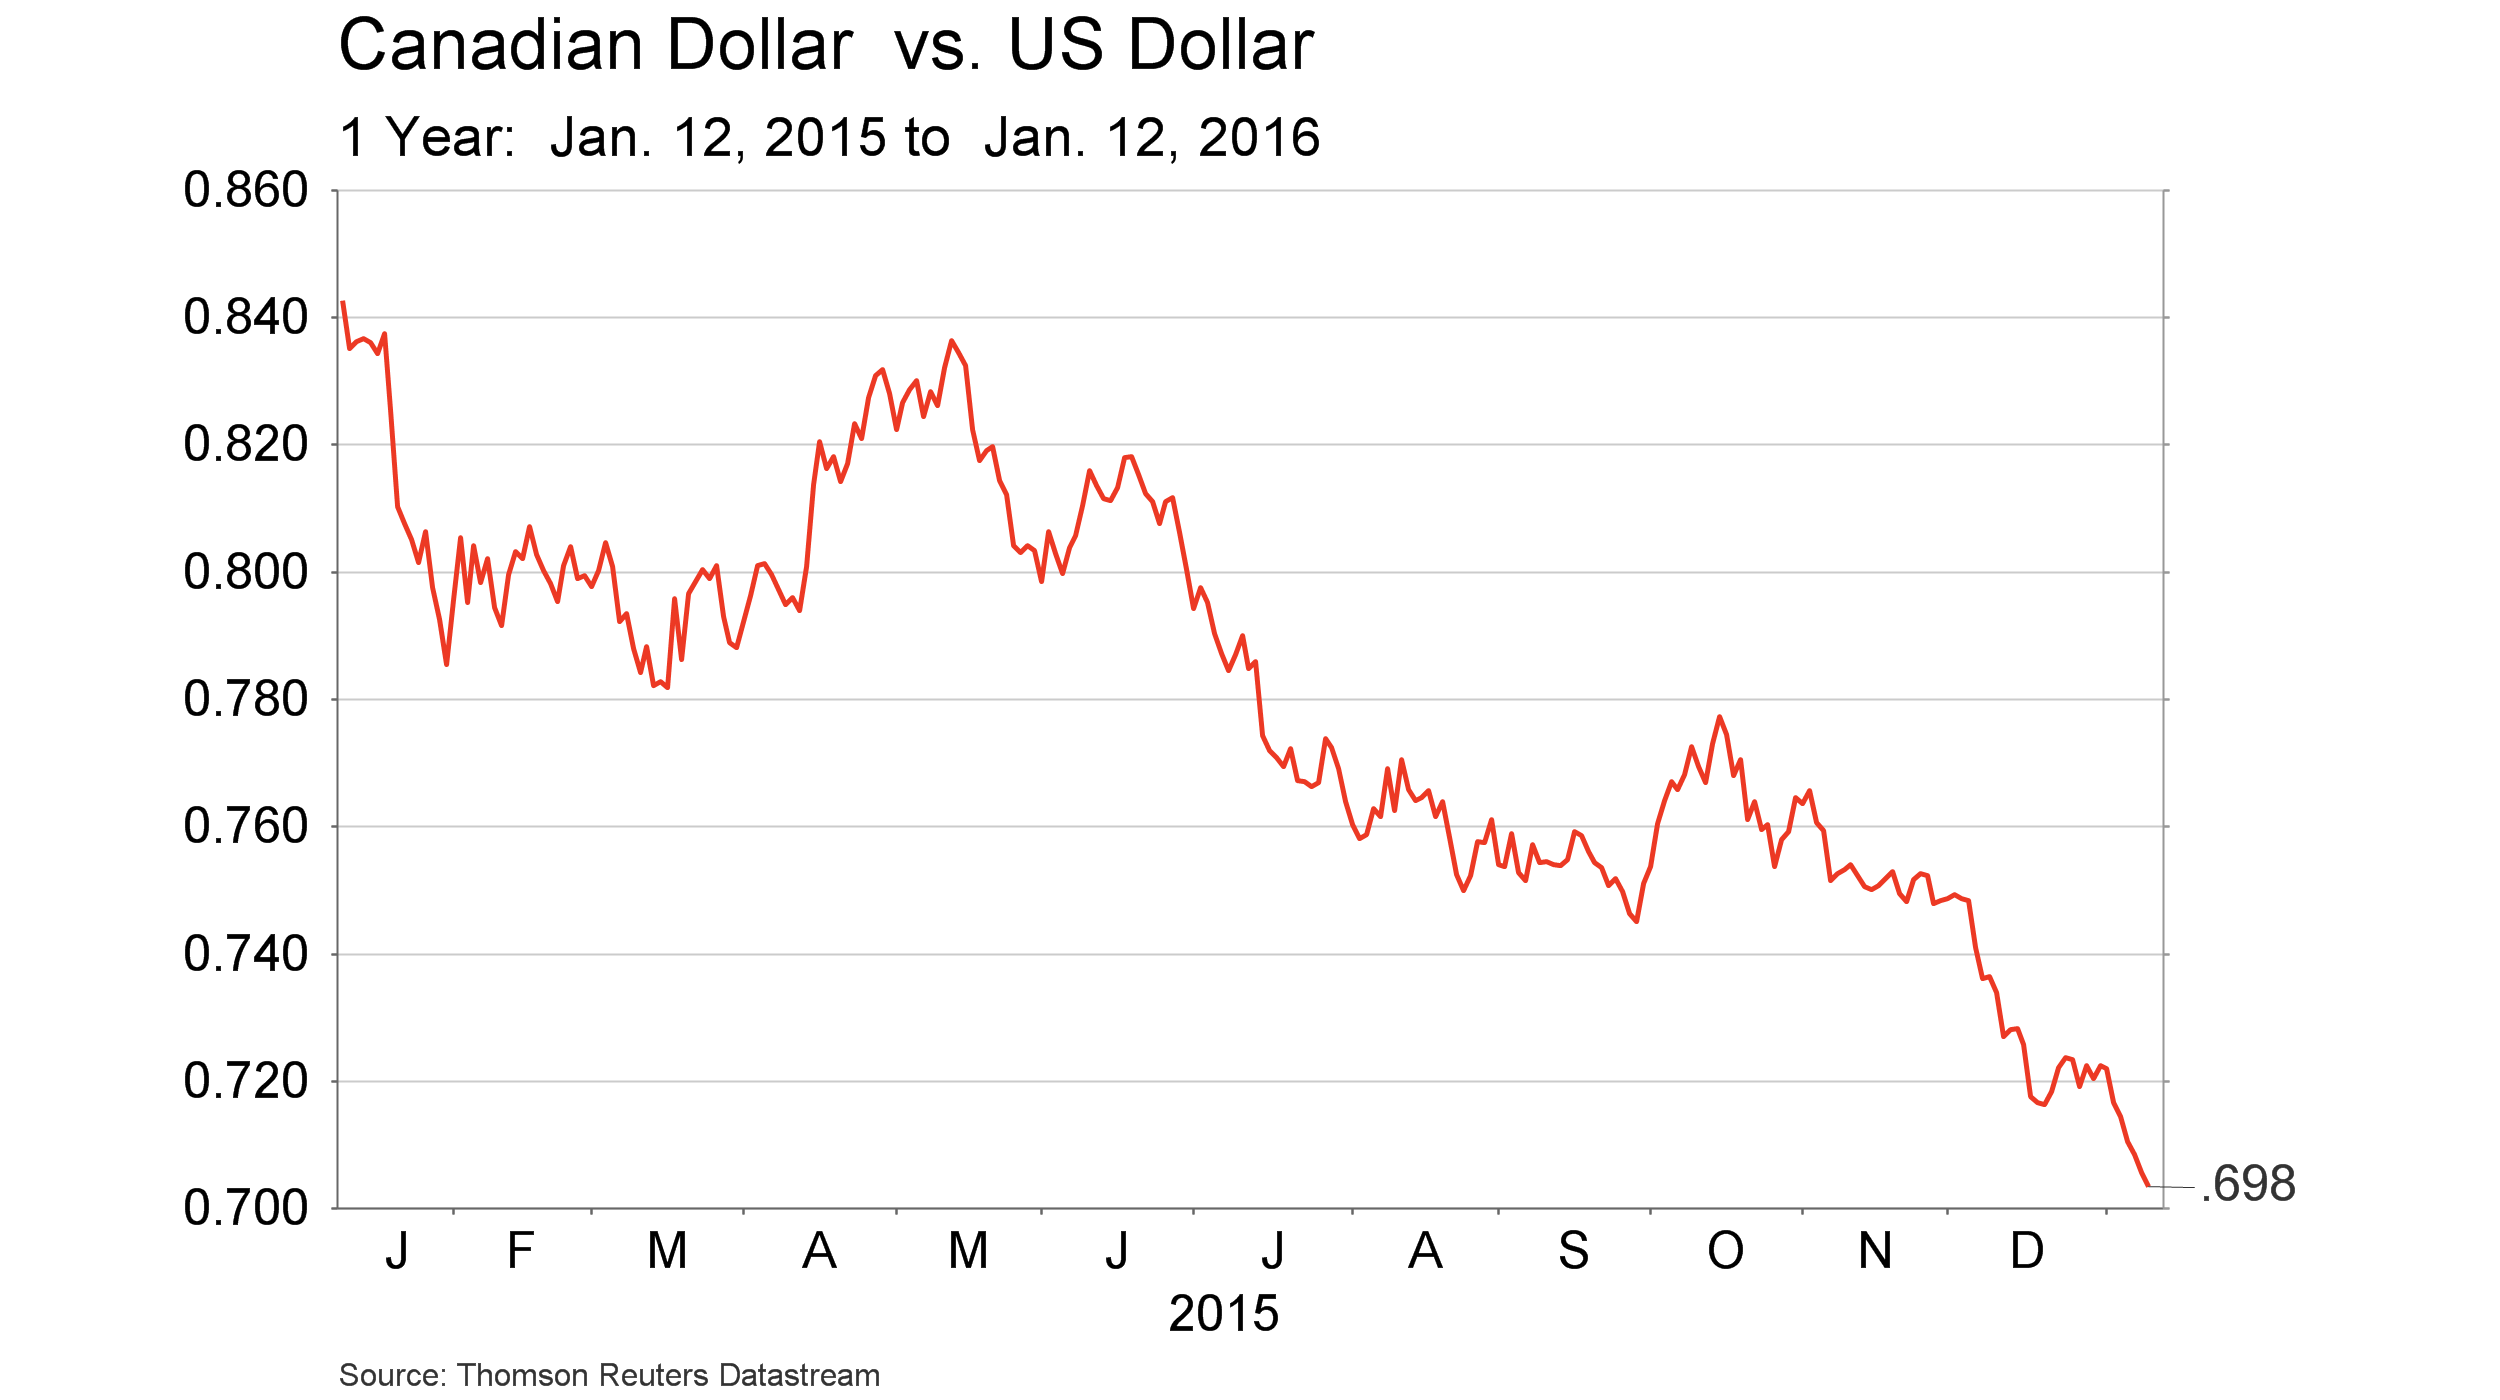 Jan. 14, 2016 - Canadian Dollar vs. USD - 1 yr